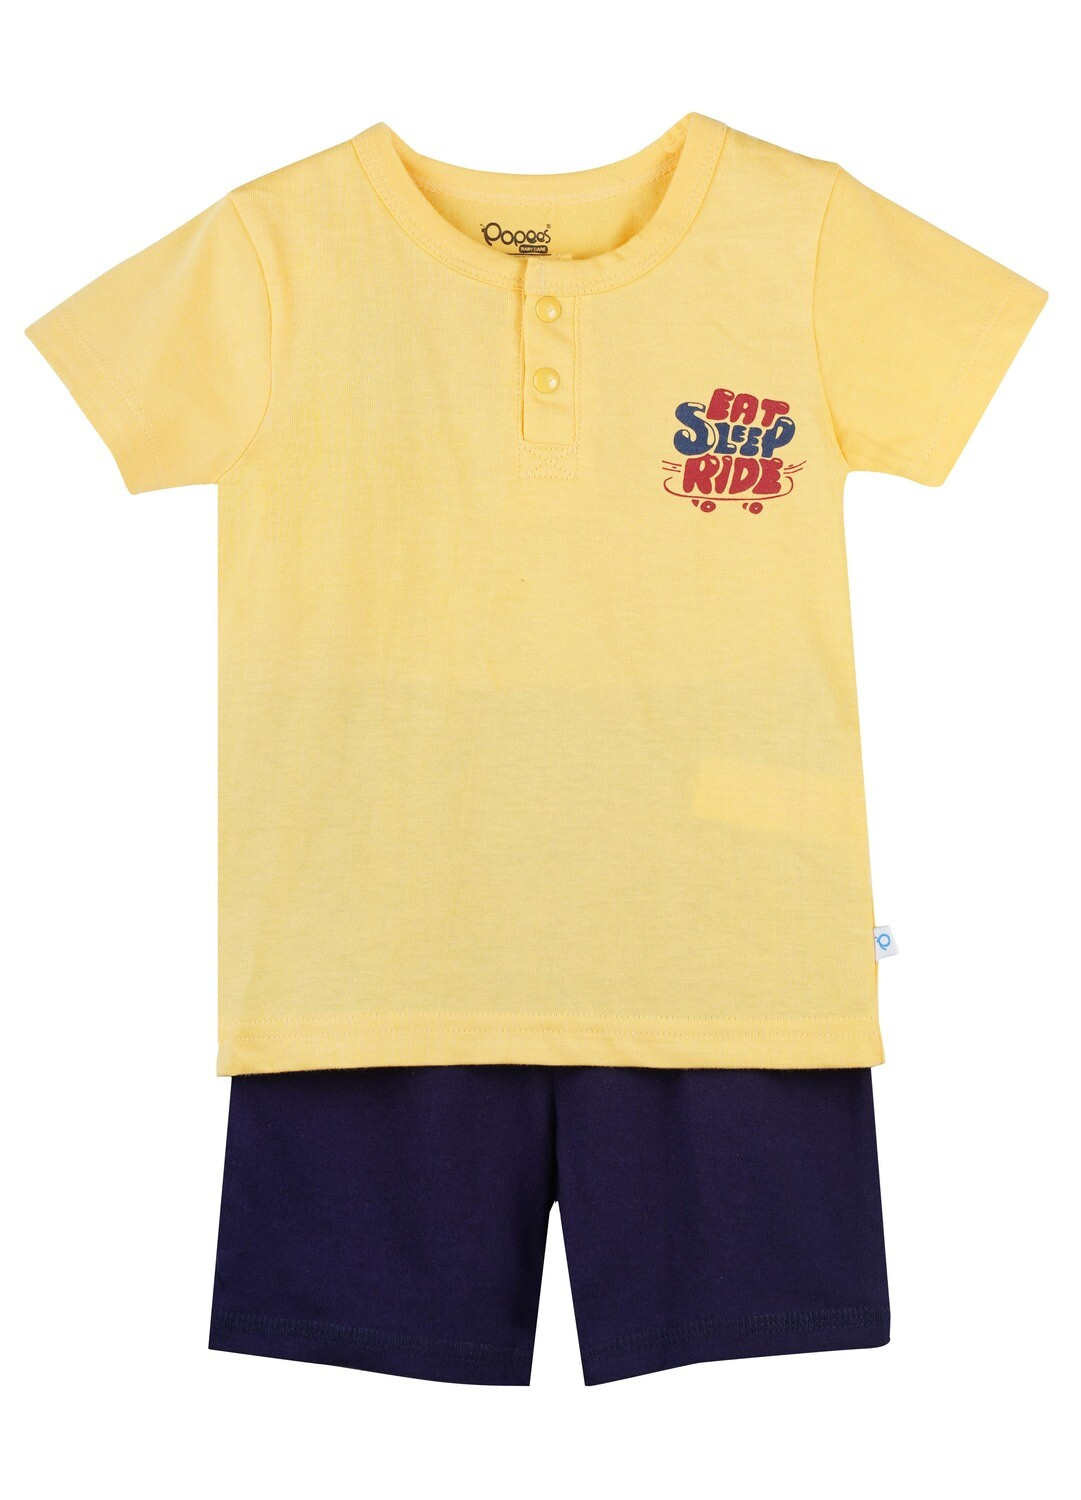 LENIN ASPEN GOLD Half Sleeve Front Half Open Top and Trouser SINGLE JERSEY for Baby Boys